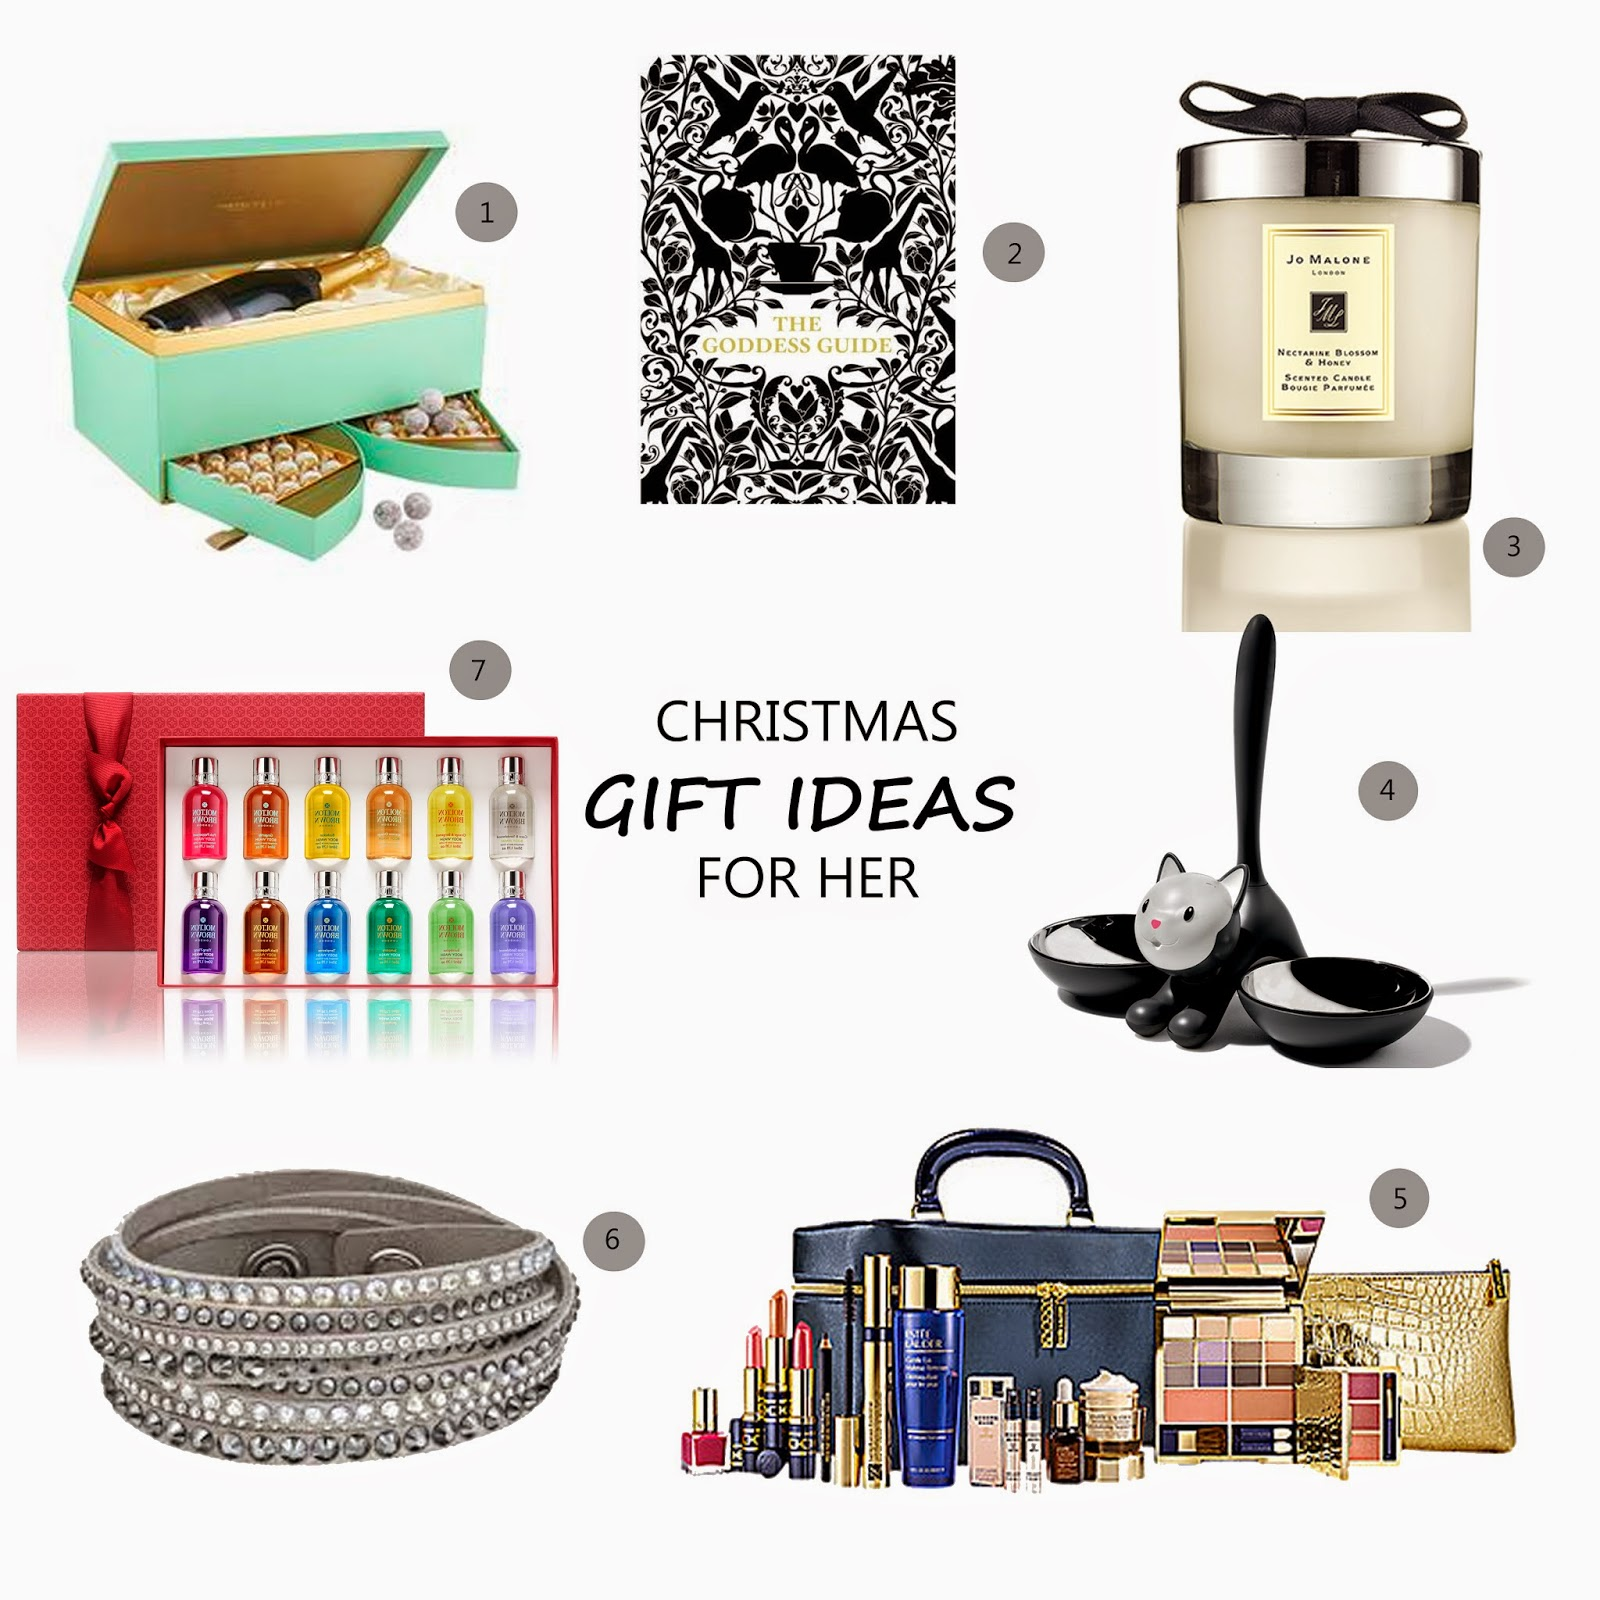 7 christmas gift ideas for her loved by laura for Christmas gift ideas for her